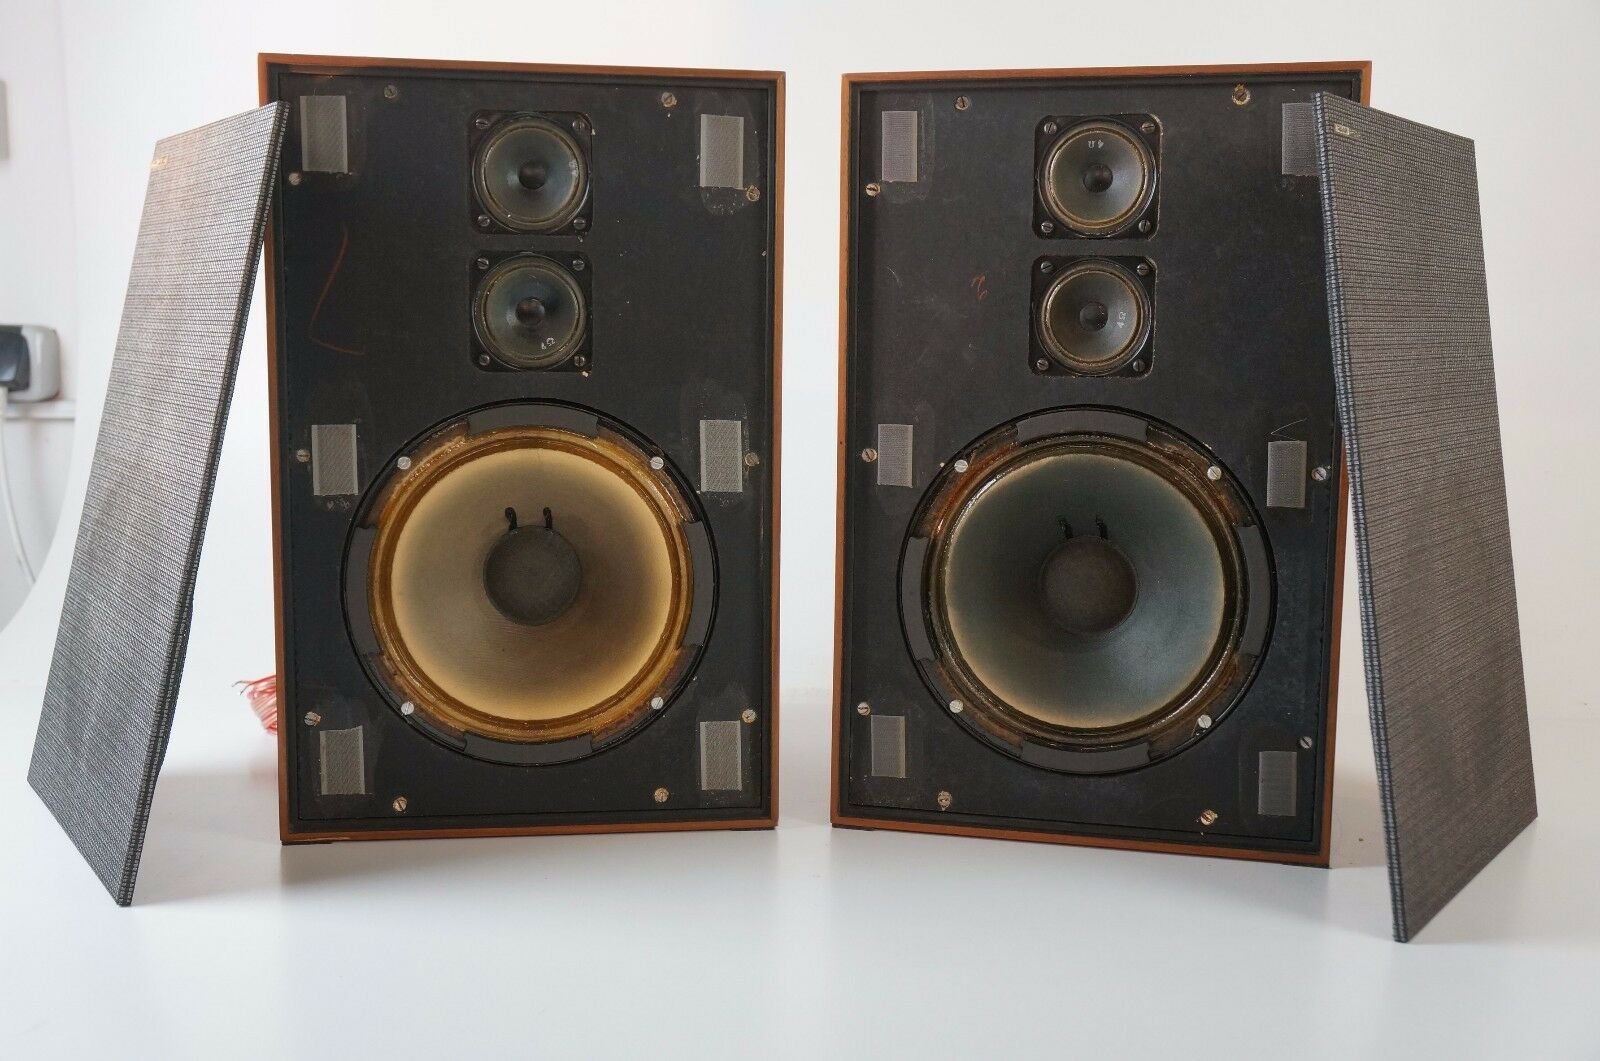 rank arena ht 525 speaker lautsprecher 4 ohm 20 watt 3 weg. Black Bedroom Furniture Sets. Home Design Ideas